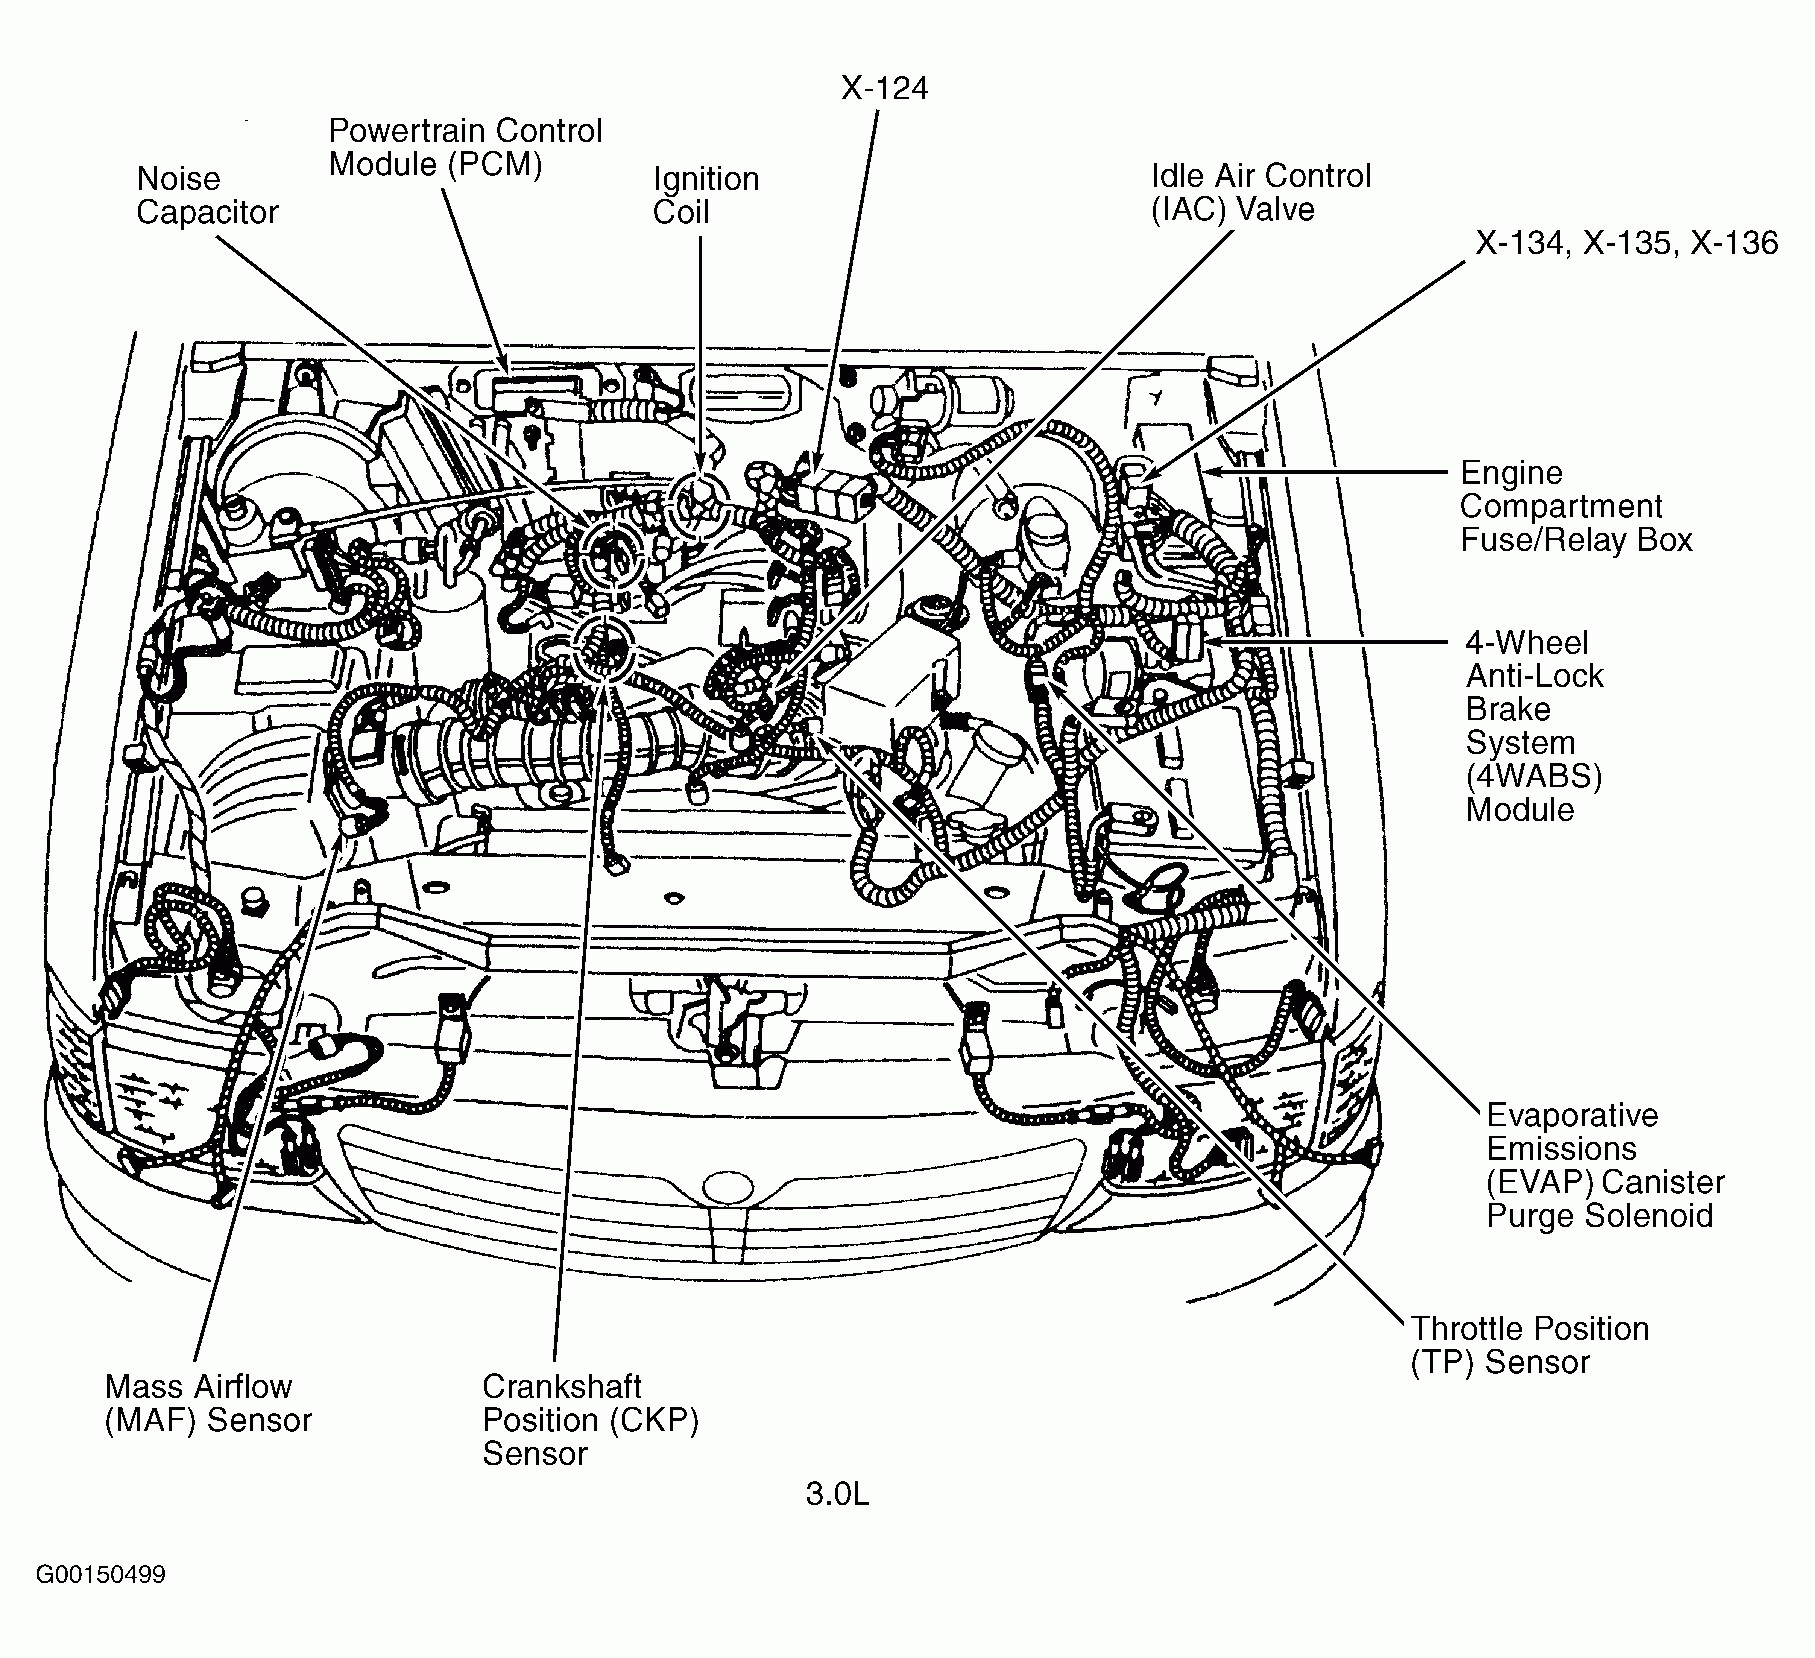 2002 Civic Engine Diagram Honda Civic Engine Diagram 2007 Mazda Cx 7 Engine Diagram 1997 Honda Of 2002 Civic Engine Diagram